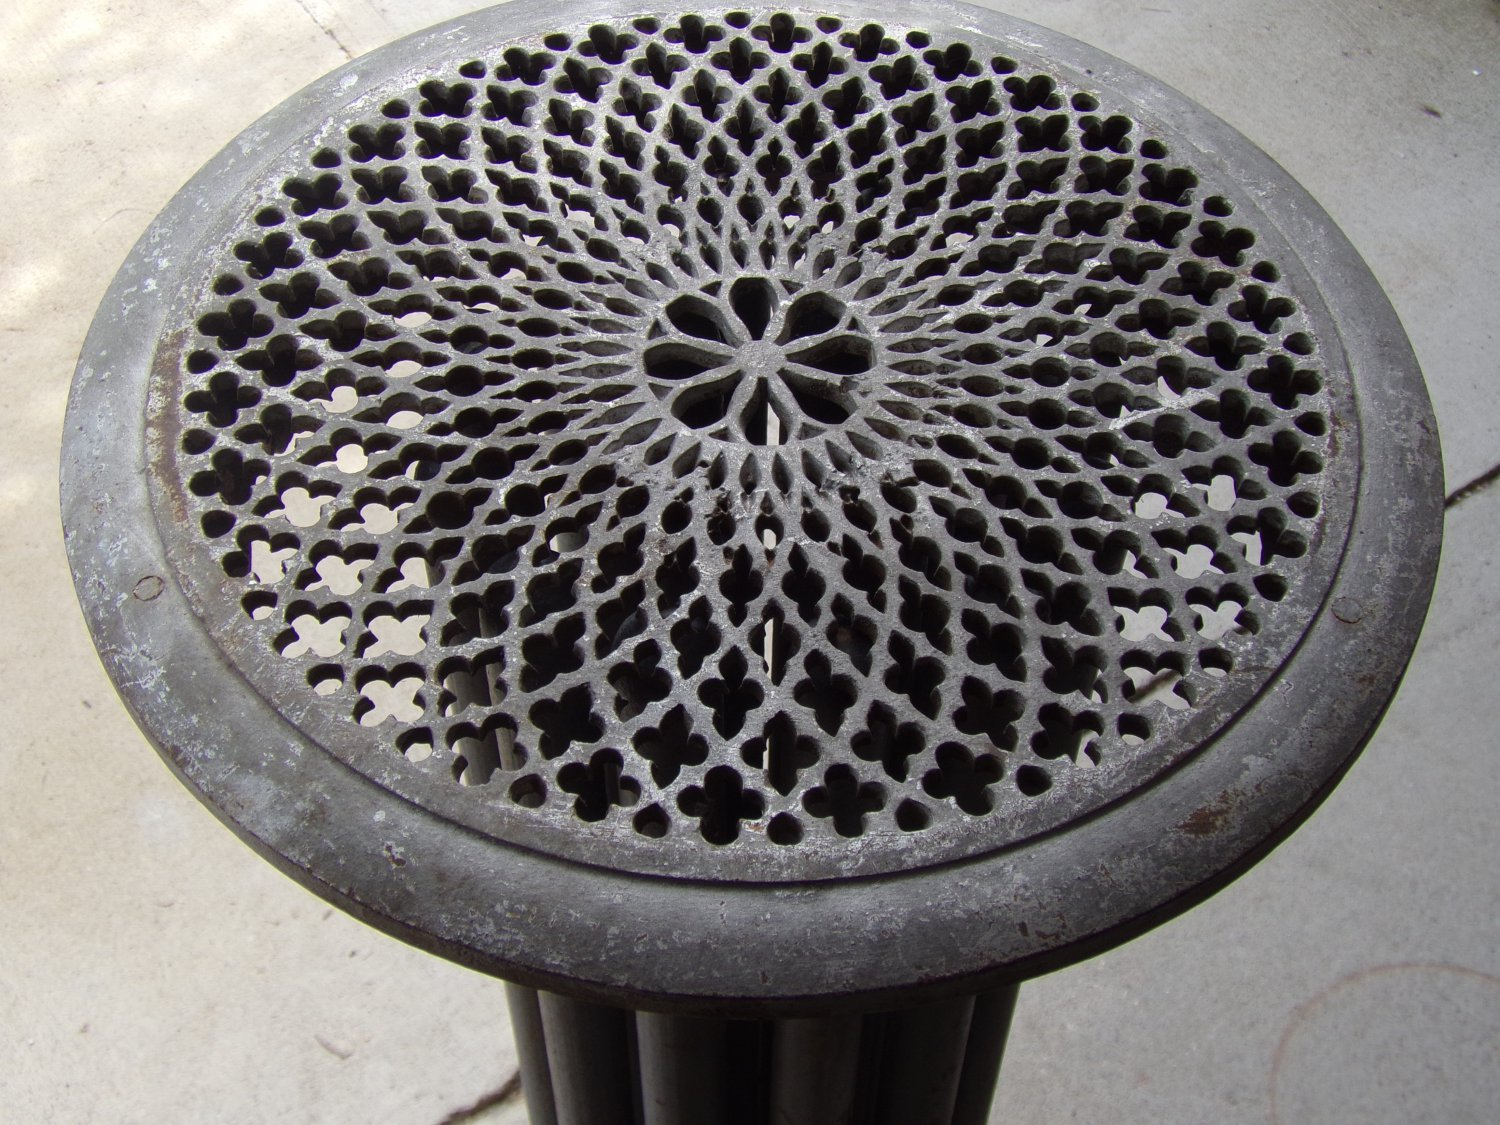 Ornate Victorian Round Radiator